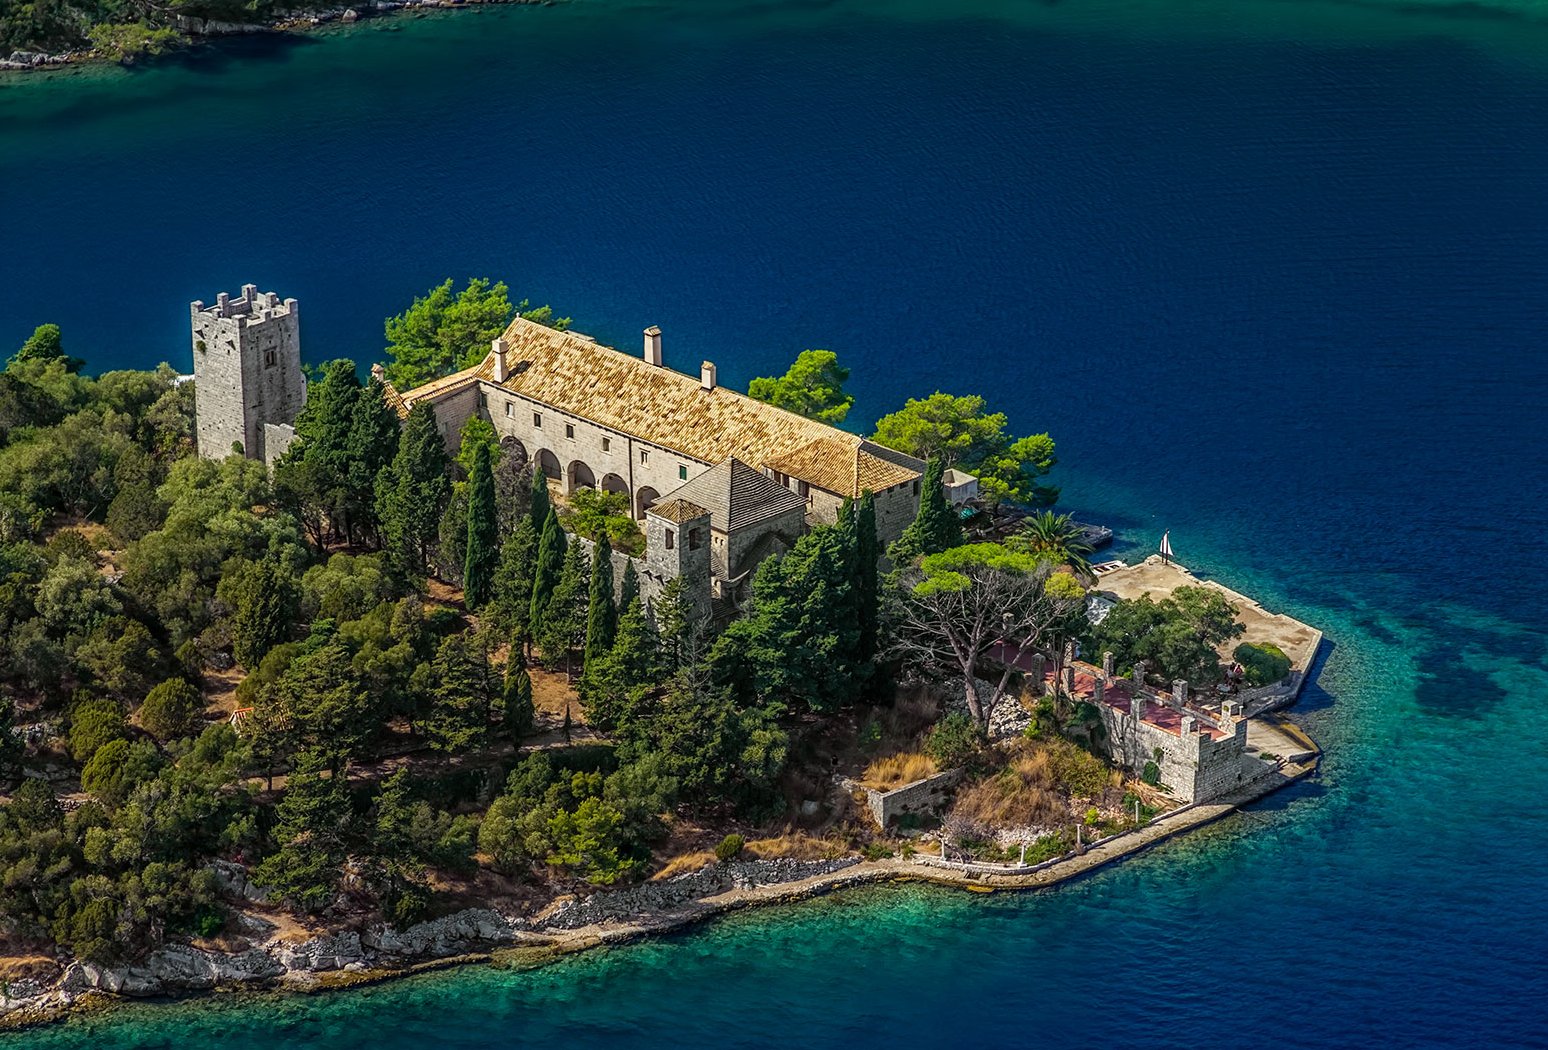 Apply for a once-in-a-lifetime experience working at a National Park in Croatia